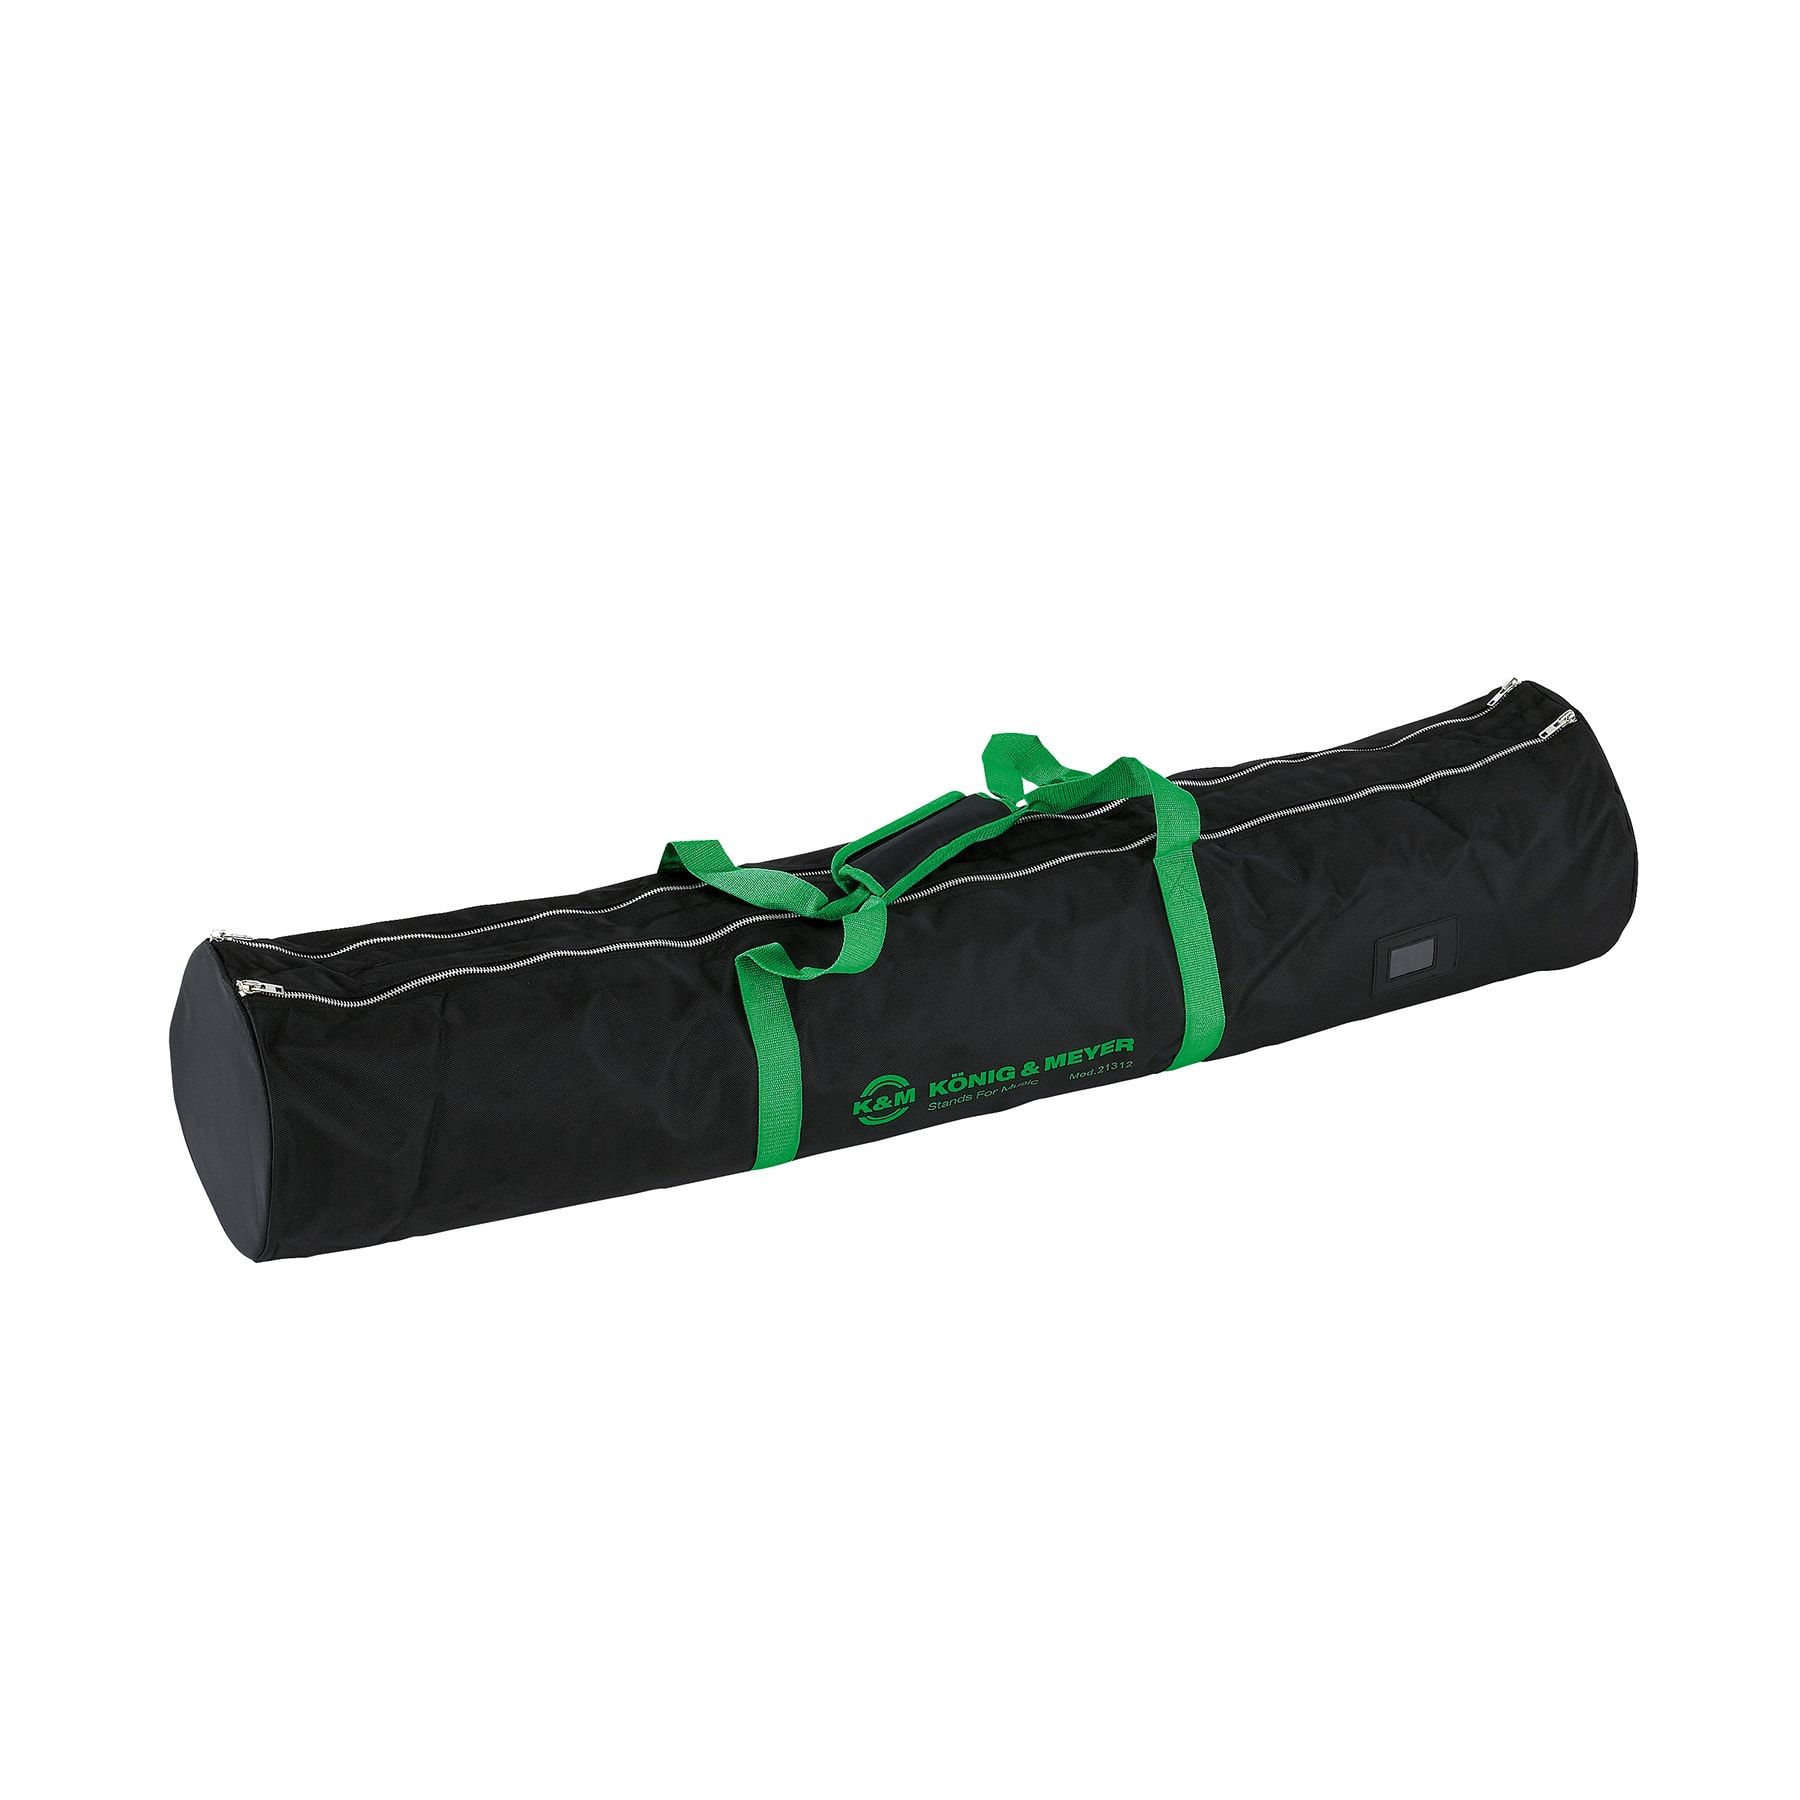 KM21312 - Carrying case »pro« for speaker/light stand